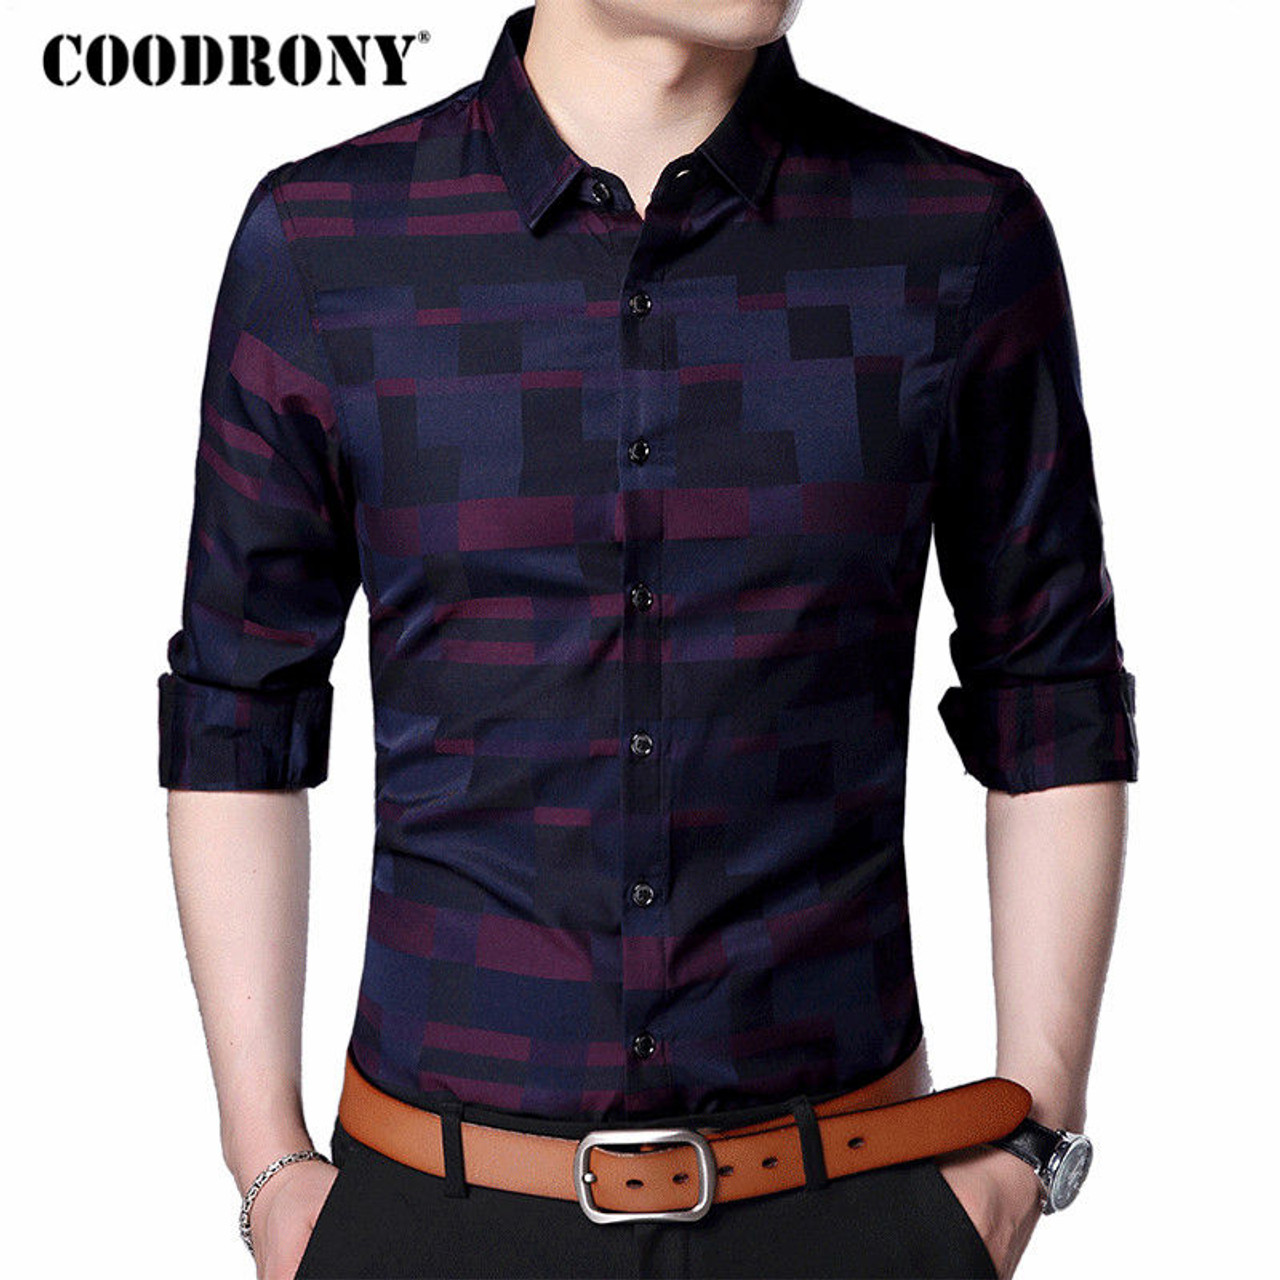 branded shirts   Online Discount Shop for Electronics, Apparel ...